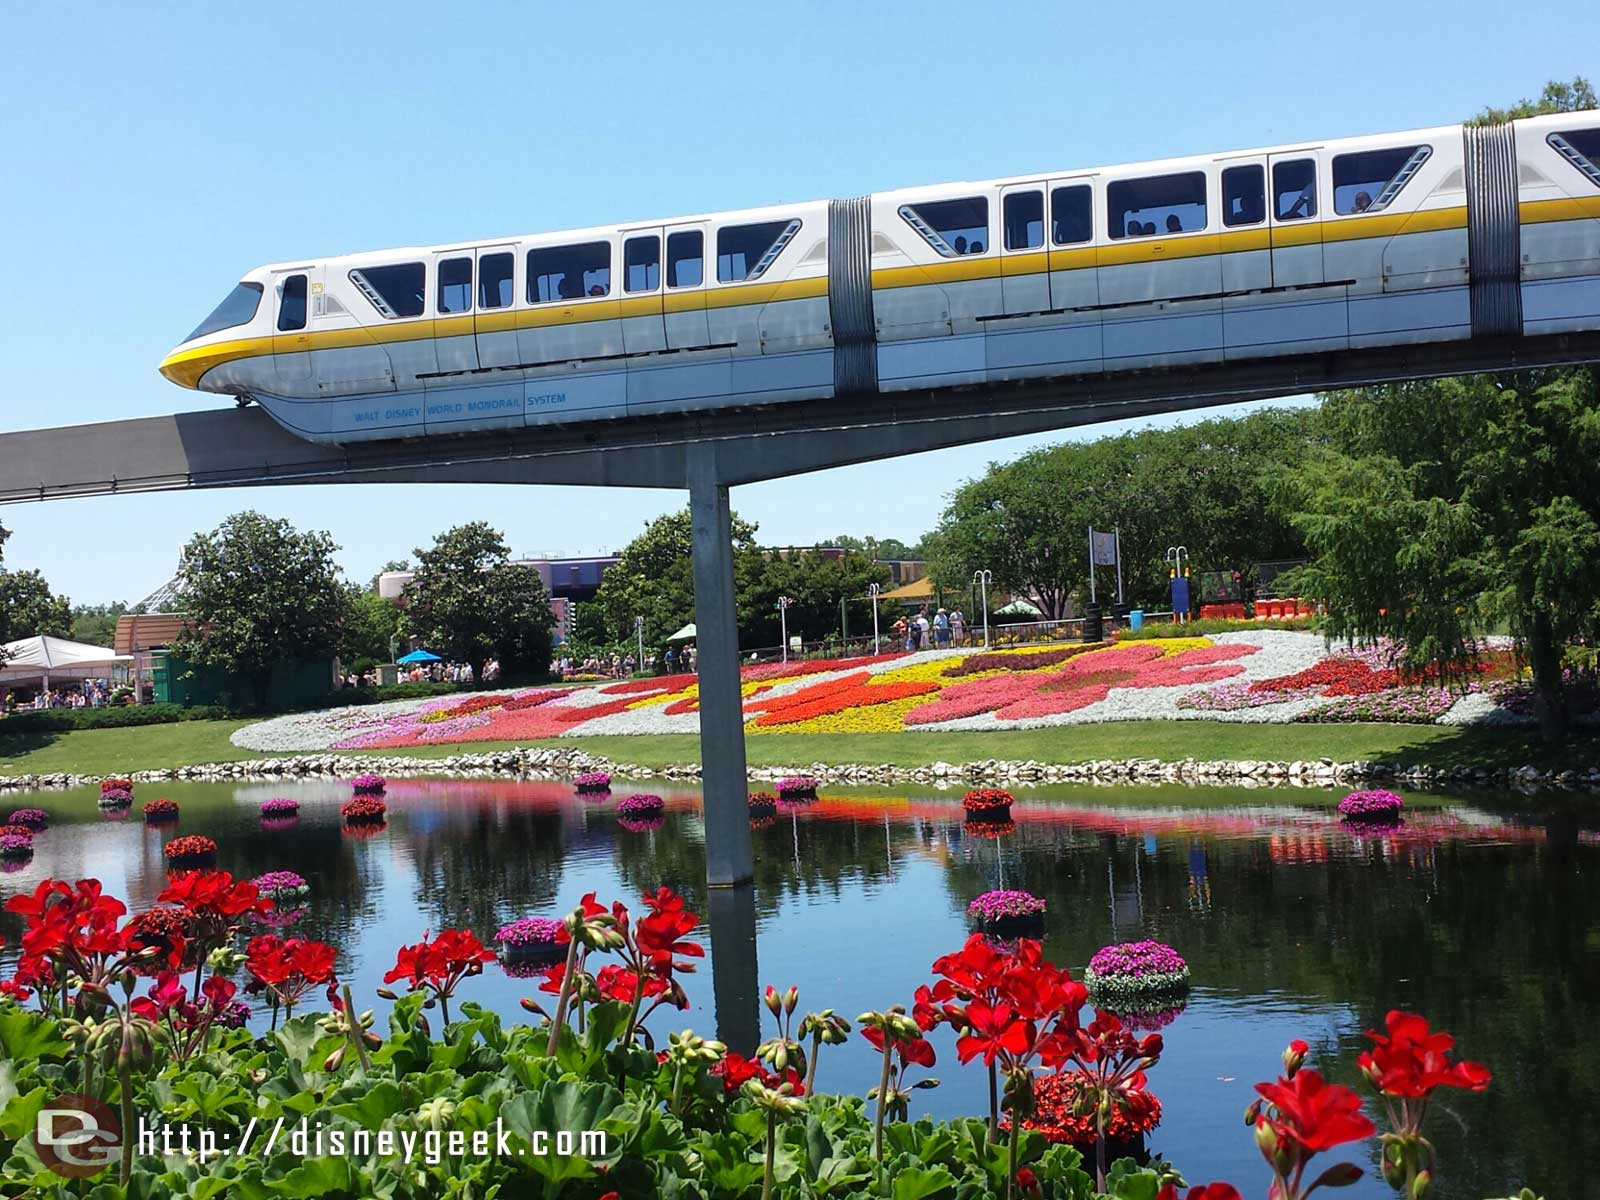 Monorail yellow passing by    –  Epcot International Flower & Garden Festival